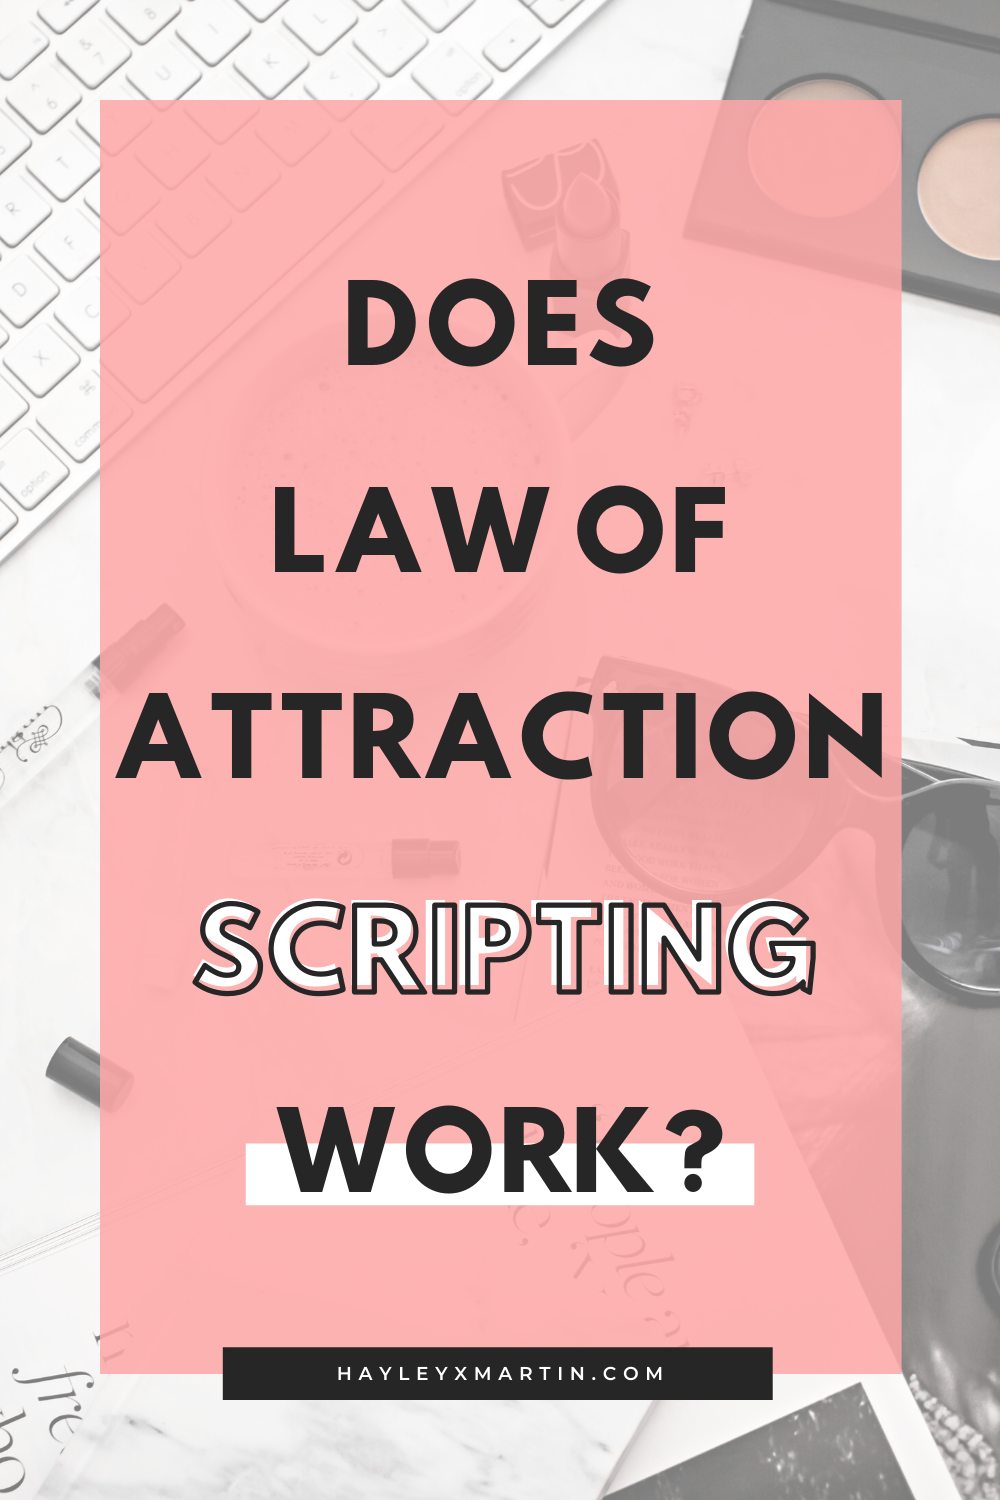 DOES LAW OF ATTRACTION SCRIPTING WORK? | HAYLEYXMARTIN | MANIFEST YOUR DREAM LIFE USING LAW OF ATTRACTION SCRIPTING